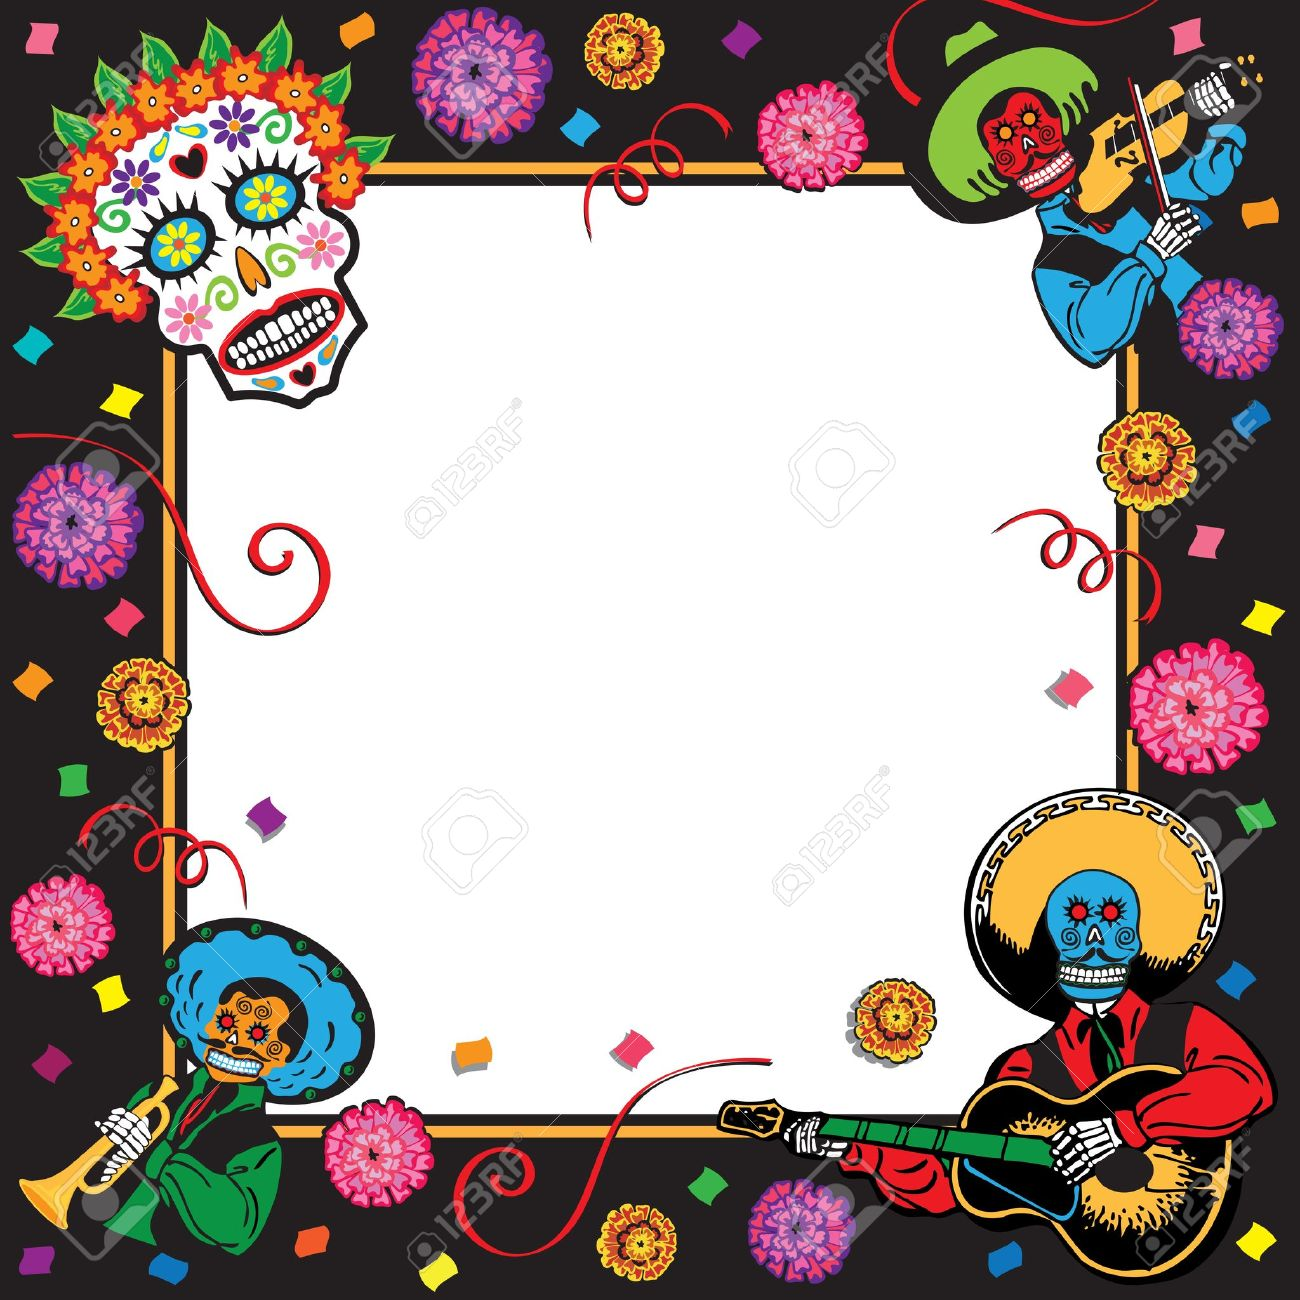 Day Of The Dead Party Invitation Royalty Free Cliparts Vectors And